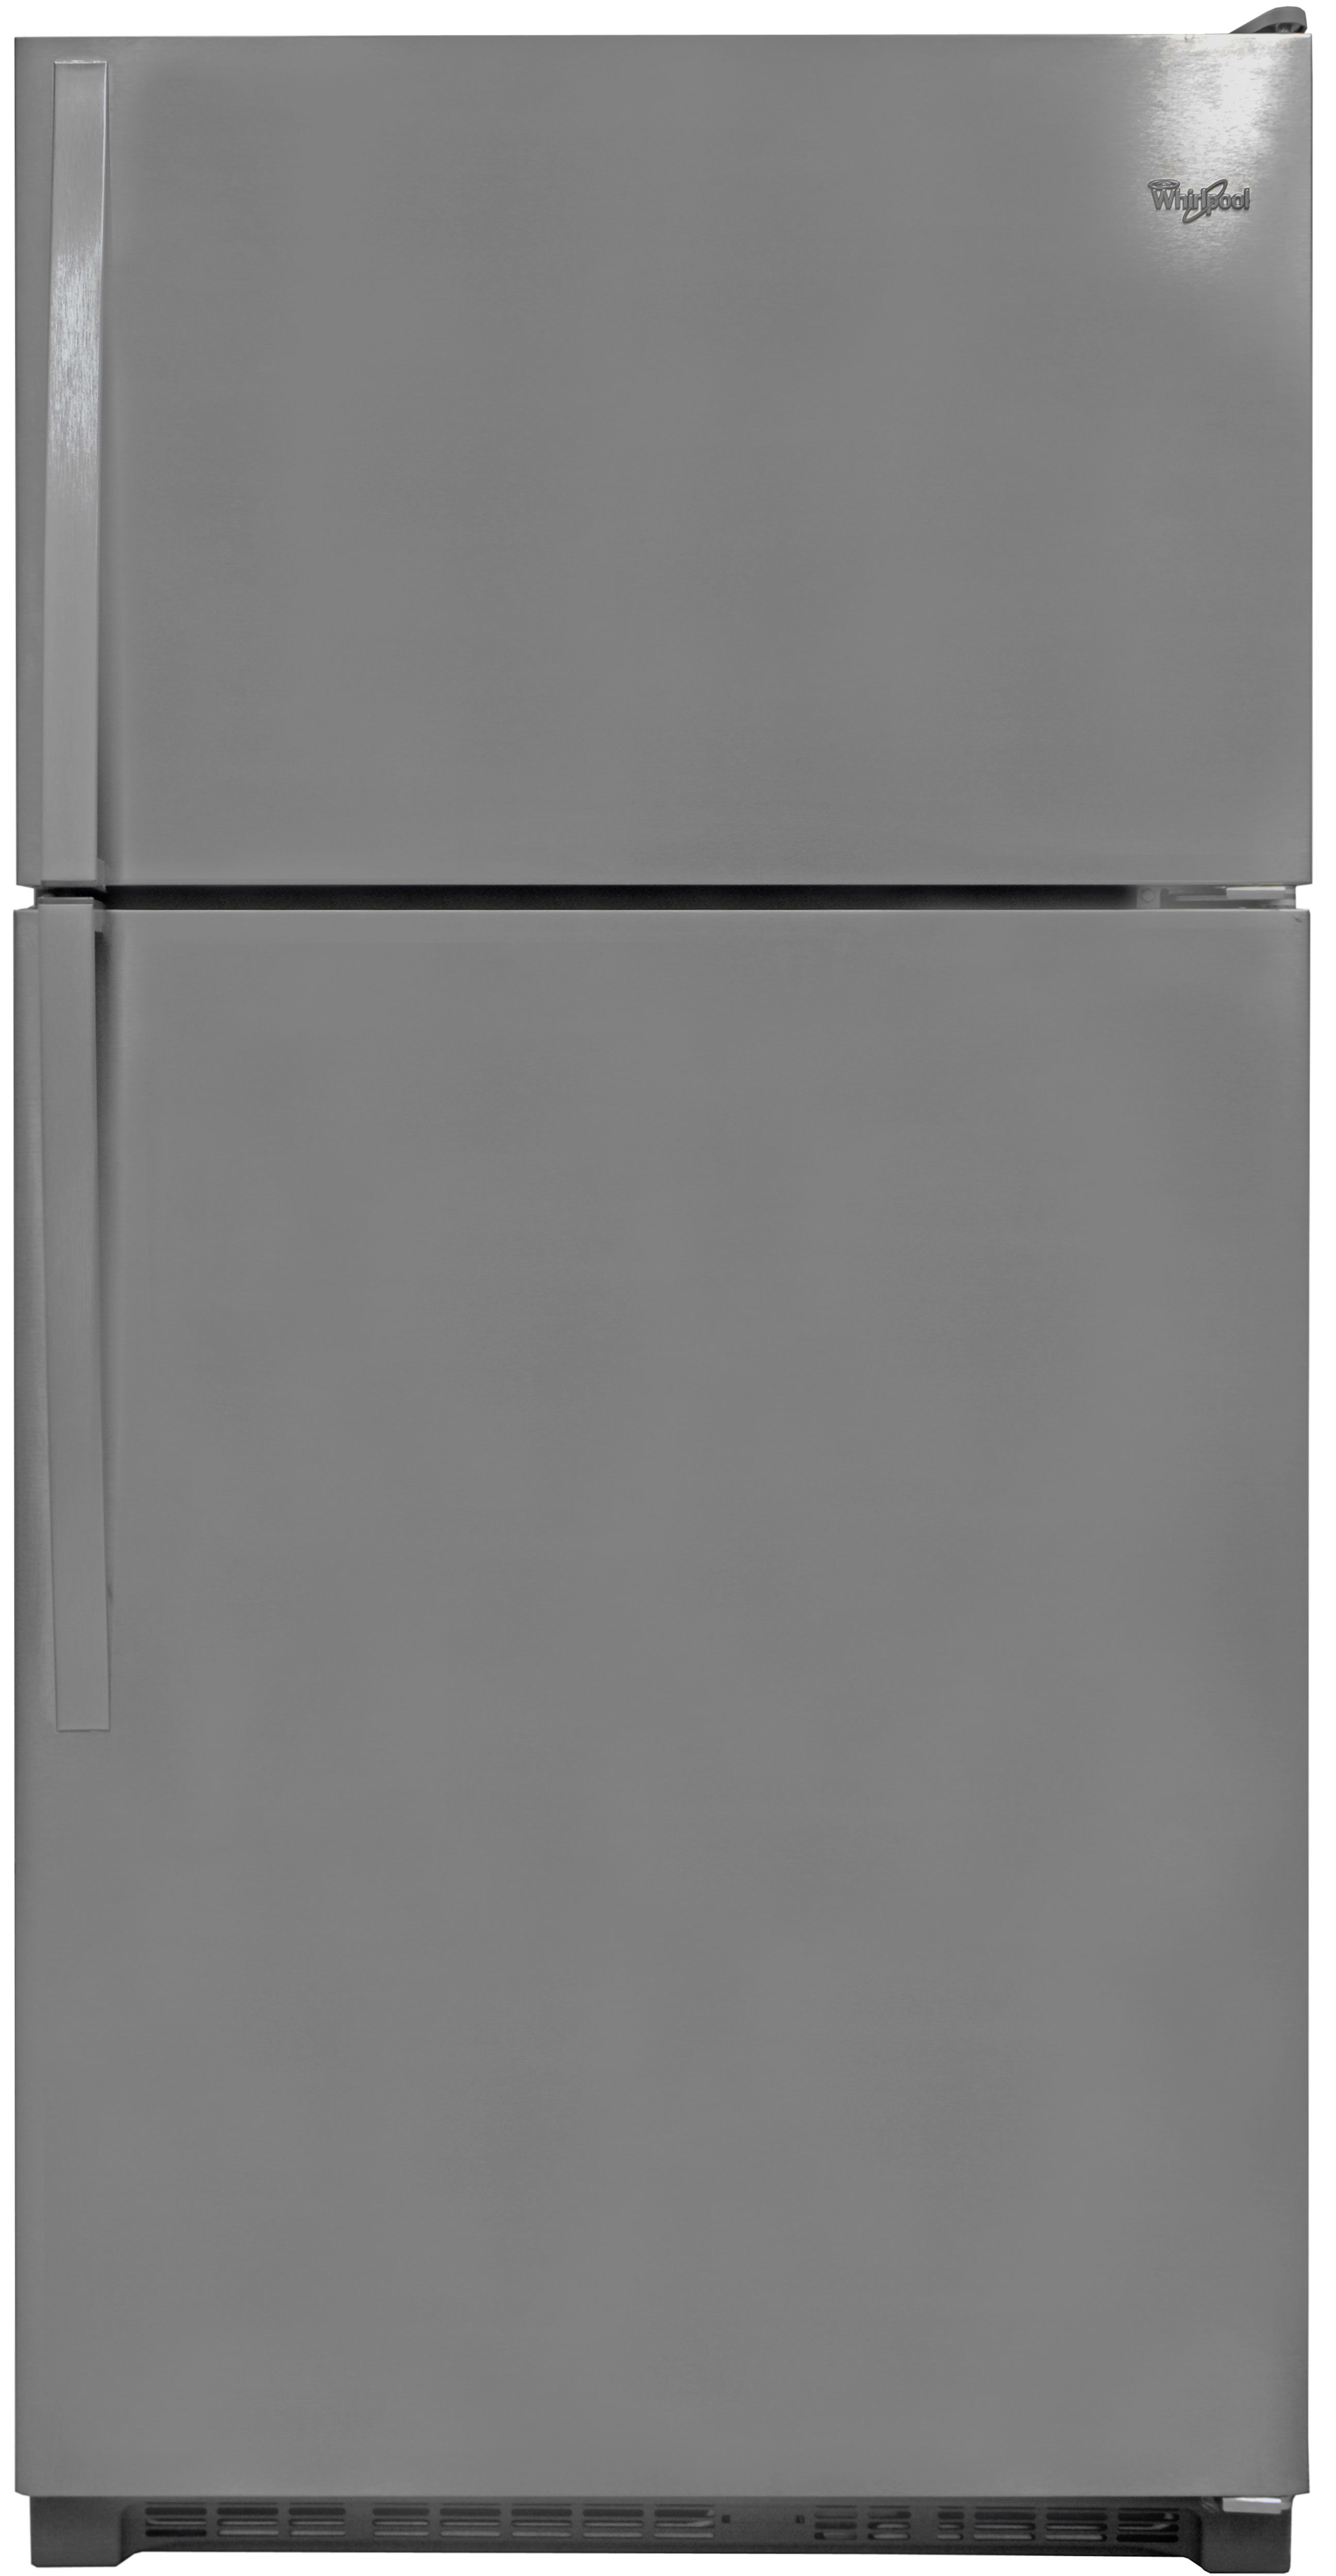 The Whirlpool WRT311FZDM's monochromatic stainless exterior is only the tip of this fridge's style iceberg.